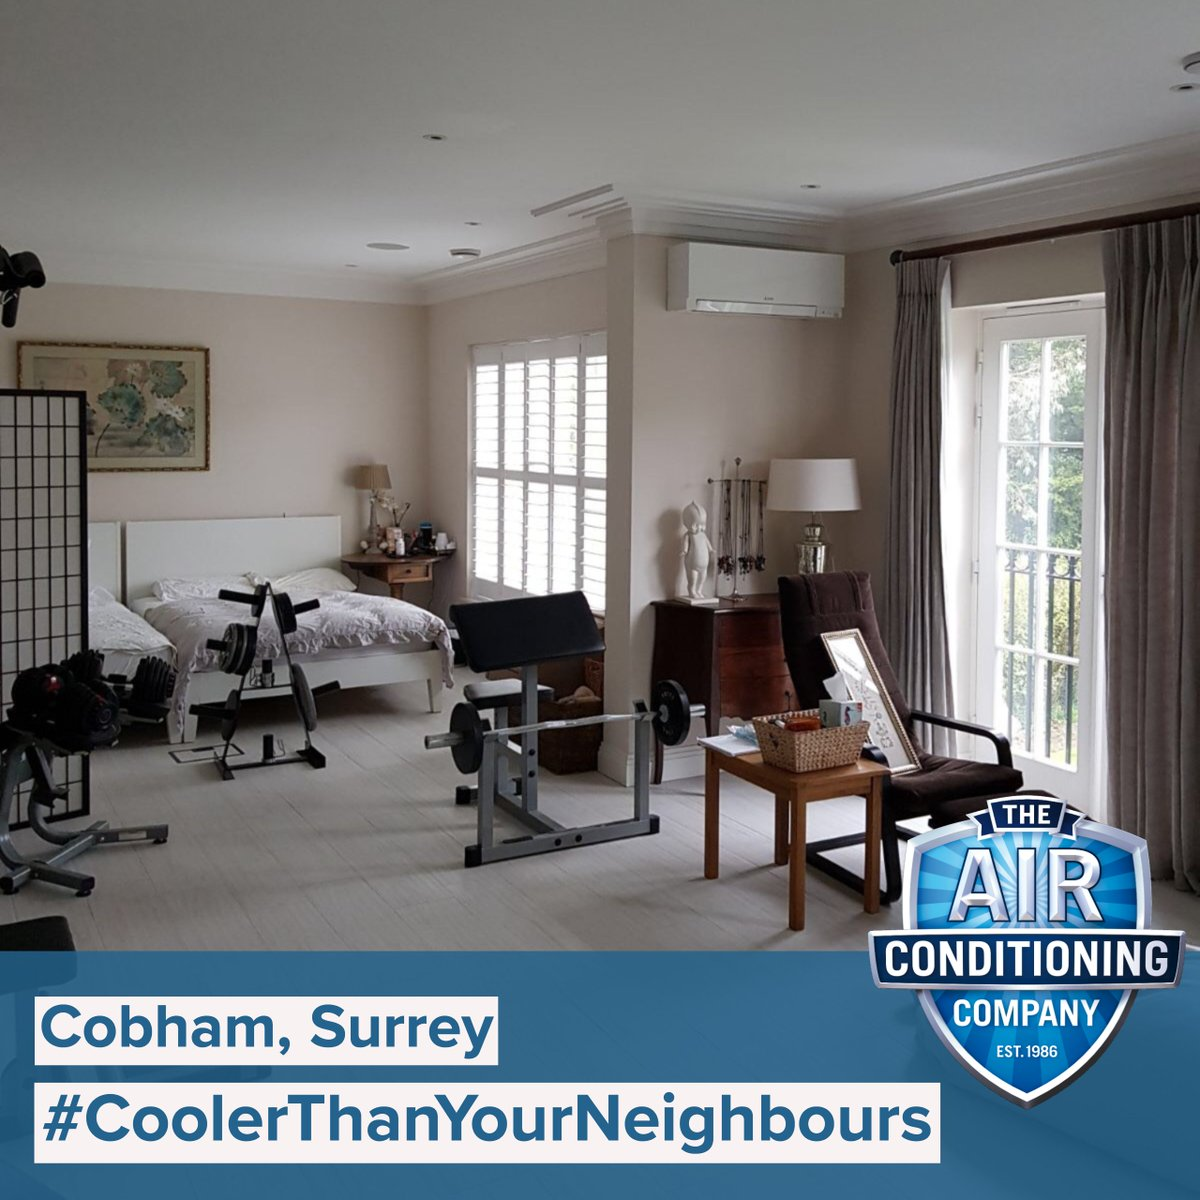 Air Conditioning Co A Vrf System Installed With Mitsubishi Zen Conditioners In Cobham Surrey Coolerthanyourneighbours Mitsubishihvac